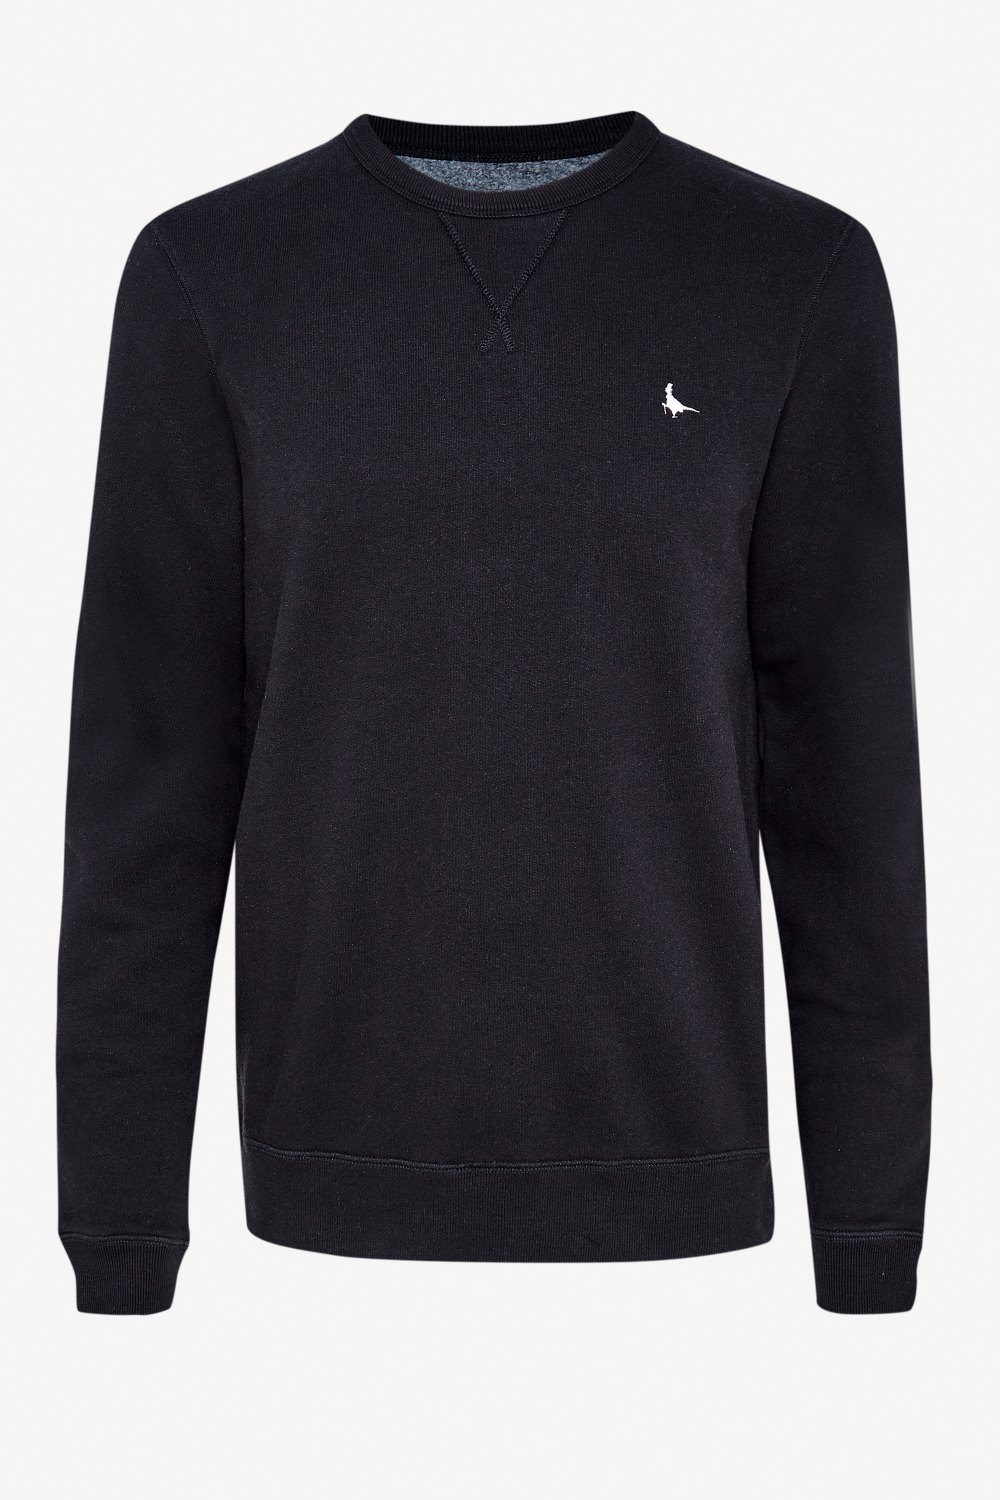 Jack Wills Black BRIDFORD SWEATSHIRT